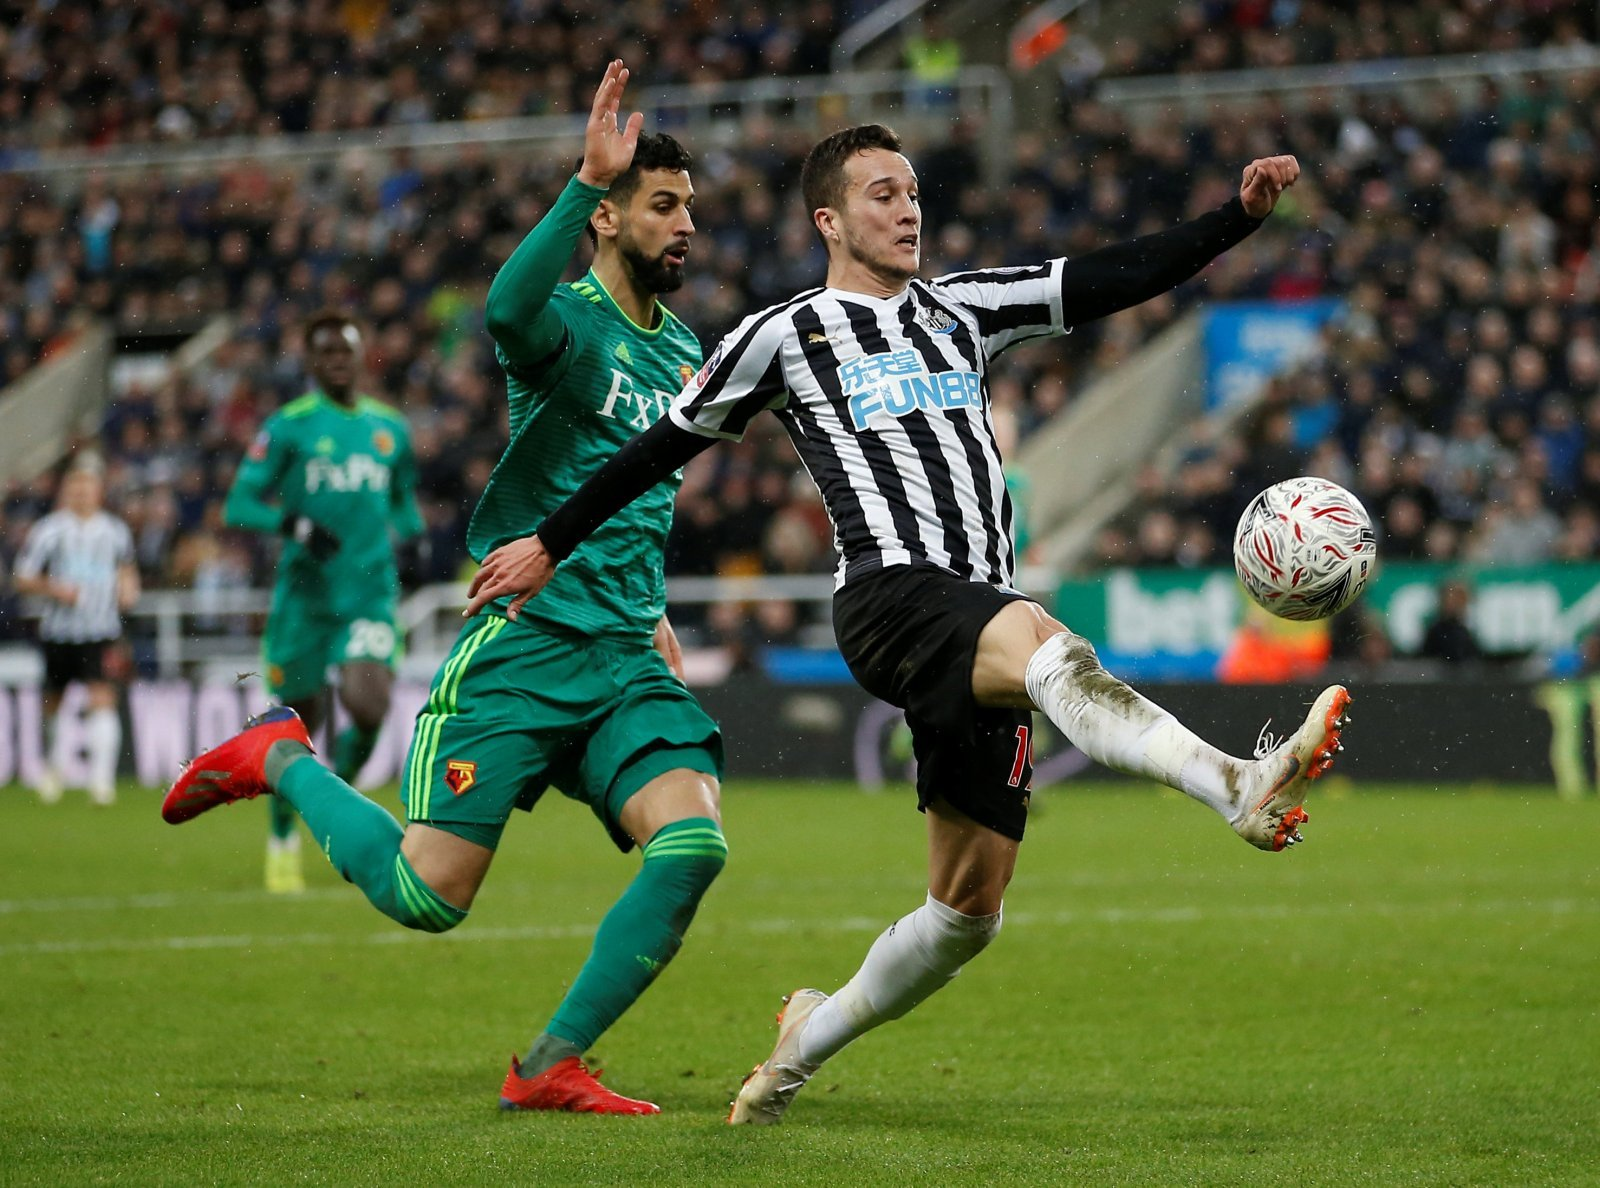 Newcastle United: Fans praise Javier Manquillo after string of impressive showings